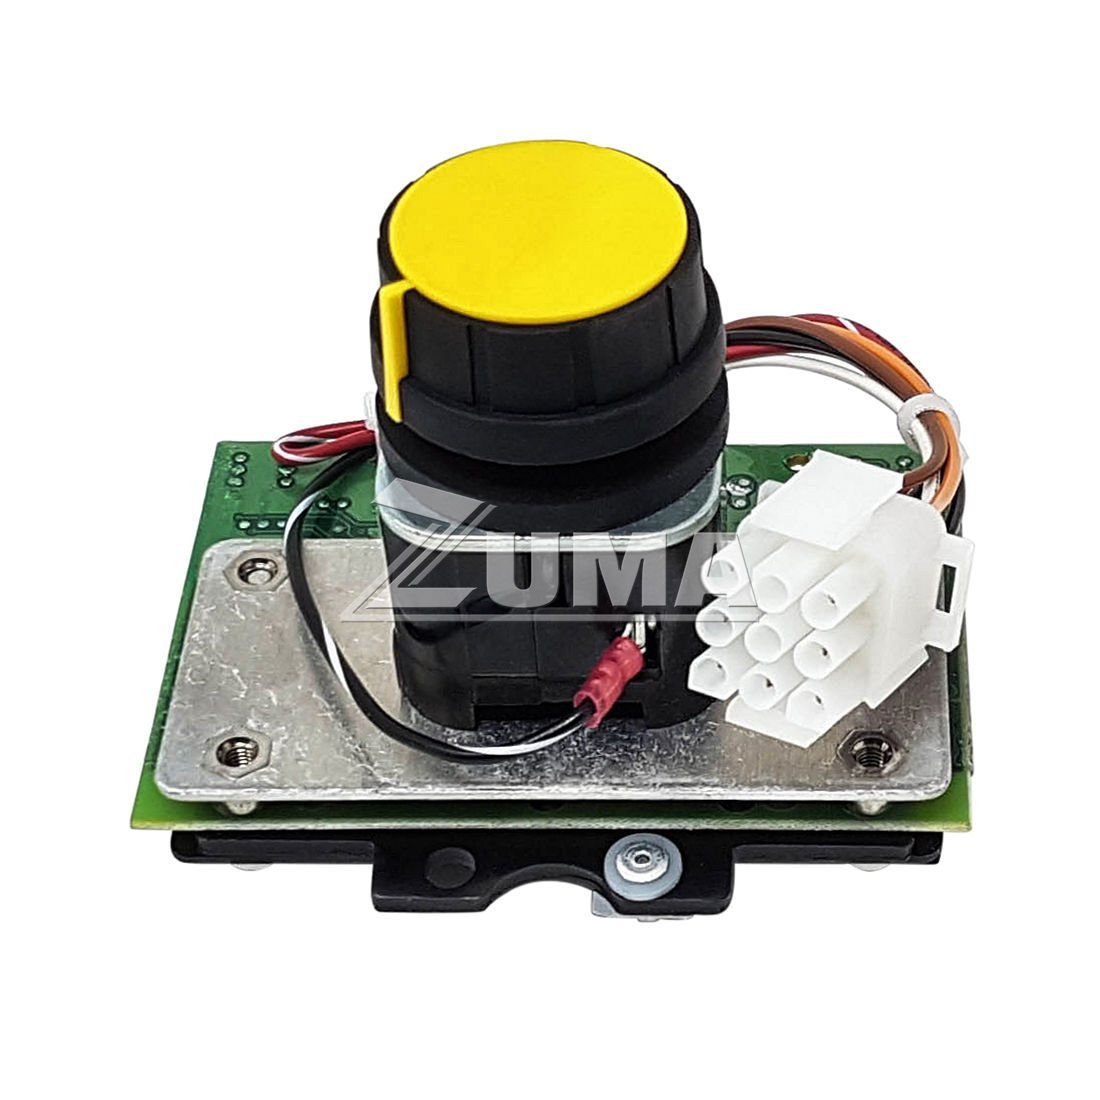 hight resolution of get quotations jlg 1600272 2560136 new oem jlg potentiometer controller with knob